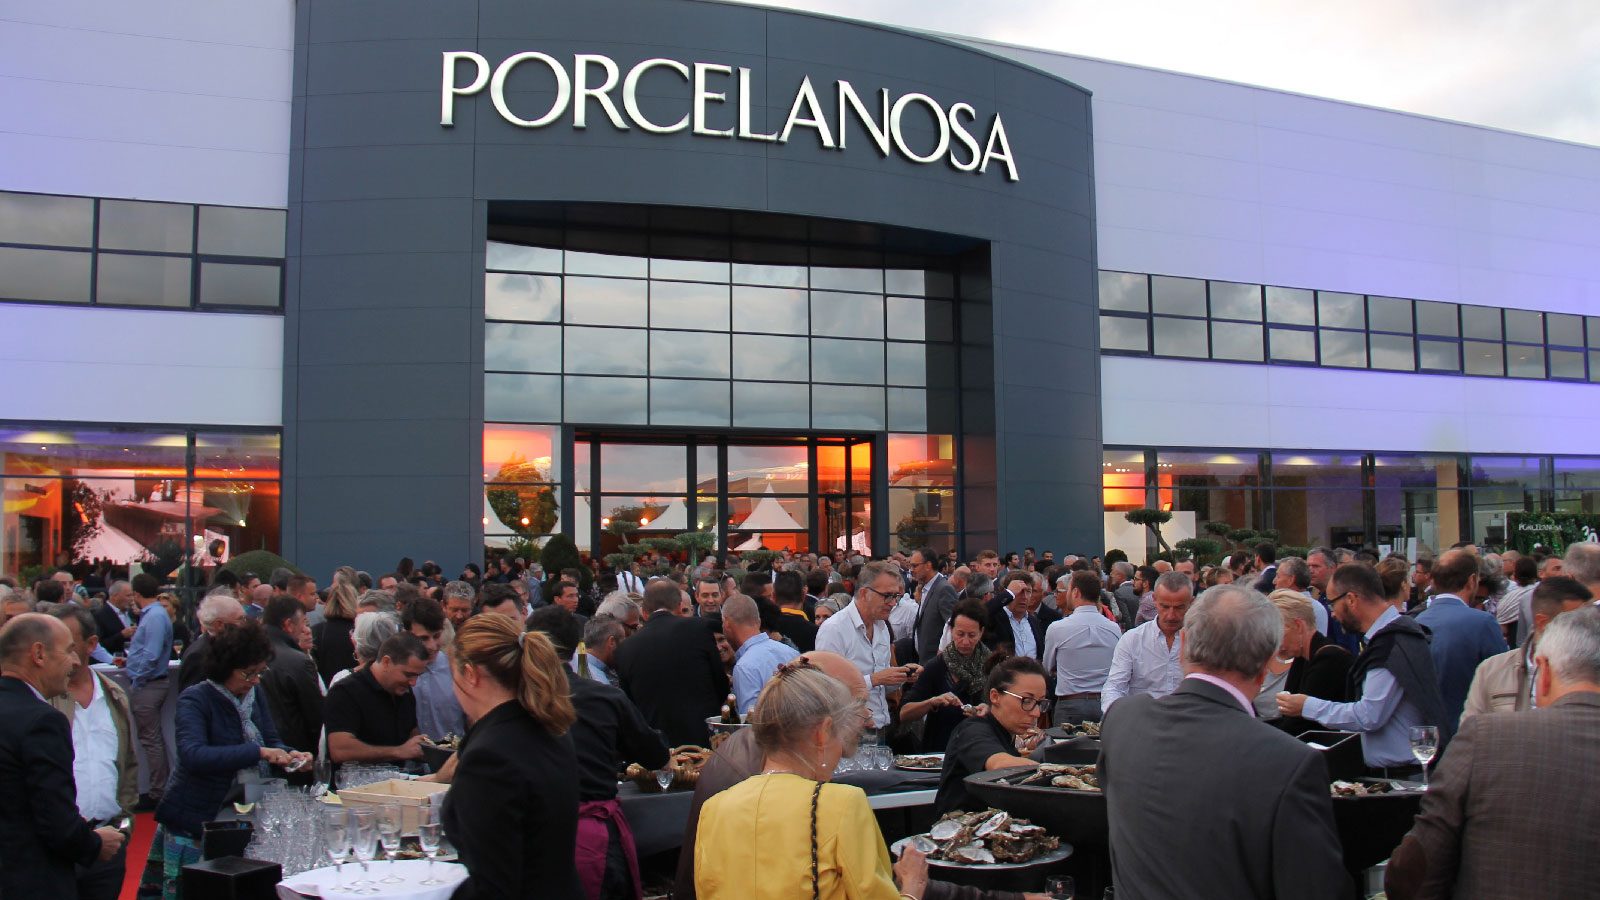 The PORCELANOSA Grupo celebrates its 30th anniversary in Strasbourg and in Nantes, France